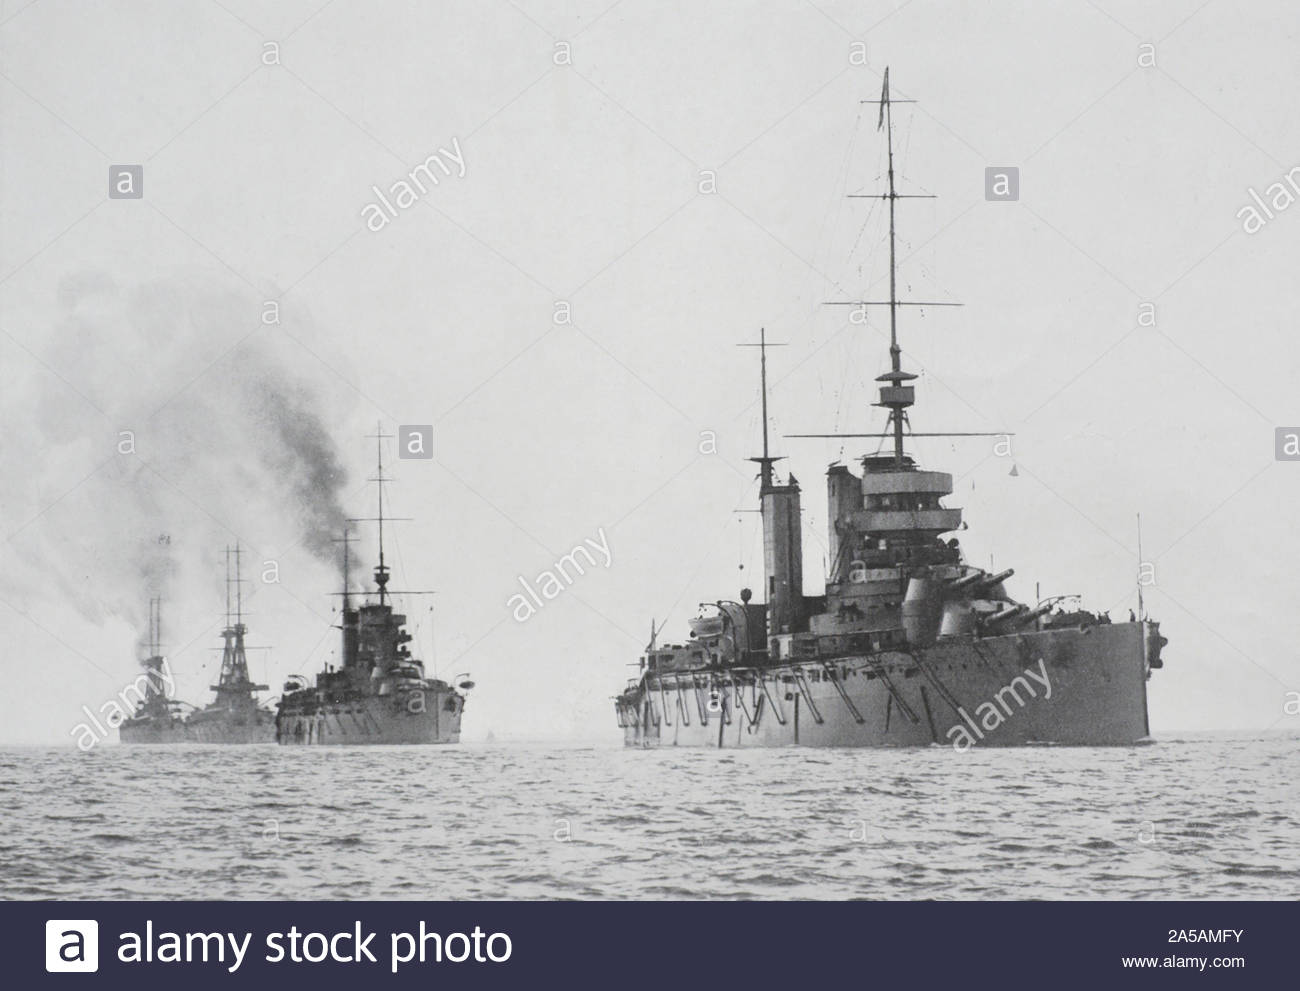 WW1 HMS Lion, HMS Princess Royal, HMS Indomitable and HMS New Zealand, fighting squadron of the Royal Navy, vintage photograph from 1914 Stock Photo